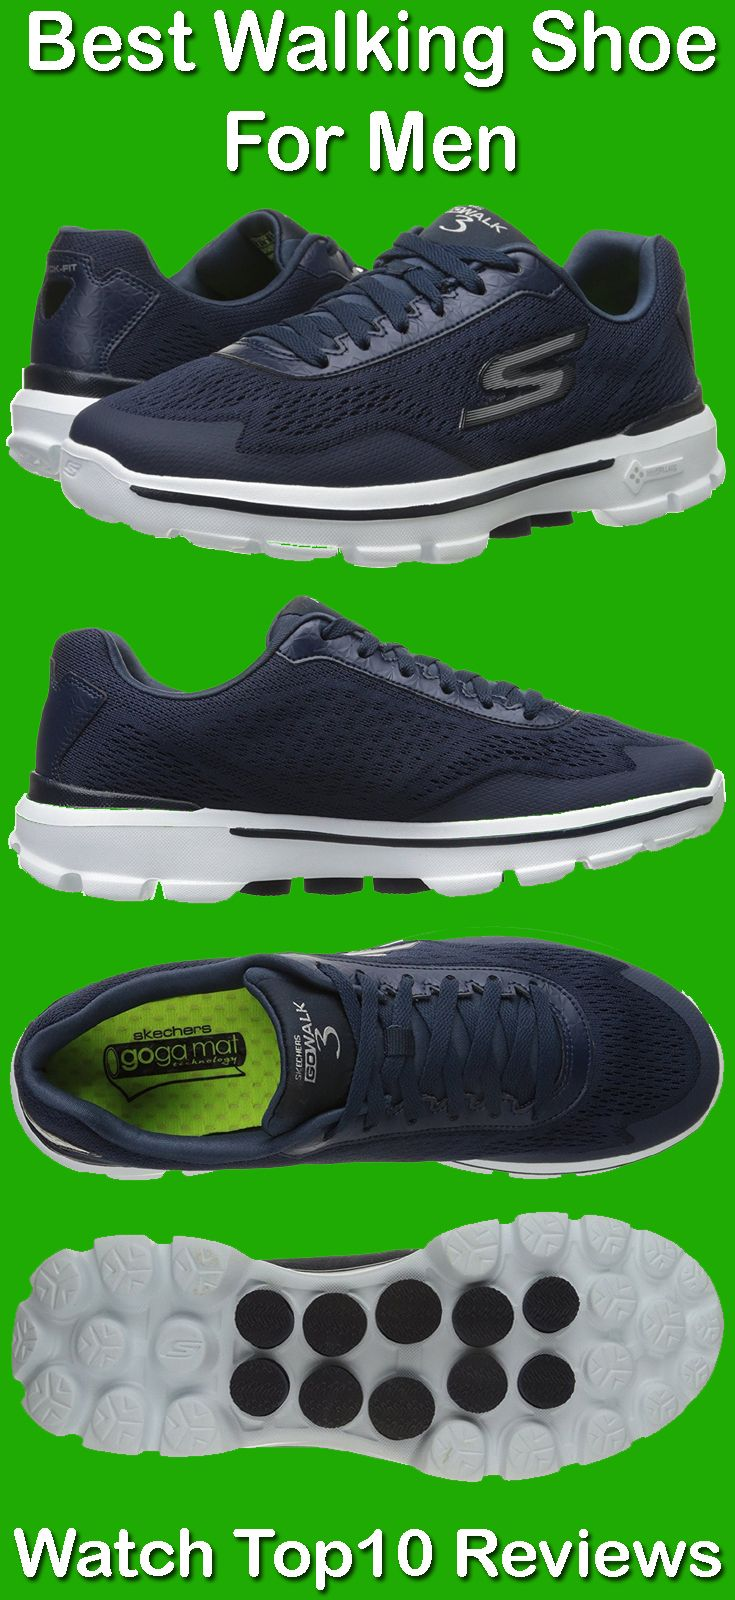 1af2199d28ef Skechers Performance Men s Go Walk 3 Skechers Go Walk 3 Reaction is a  lightweight walking shoe features mesh and synthetic fabric upper